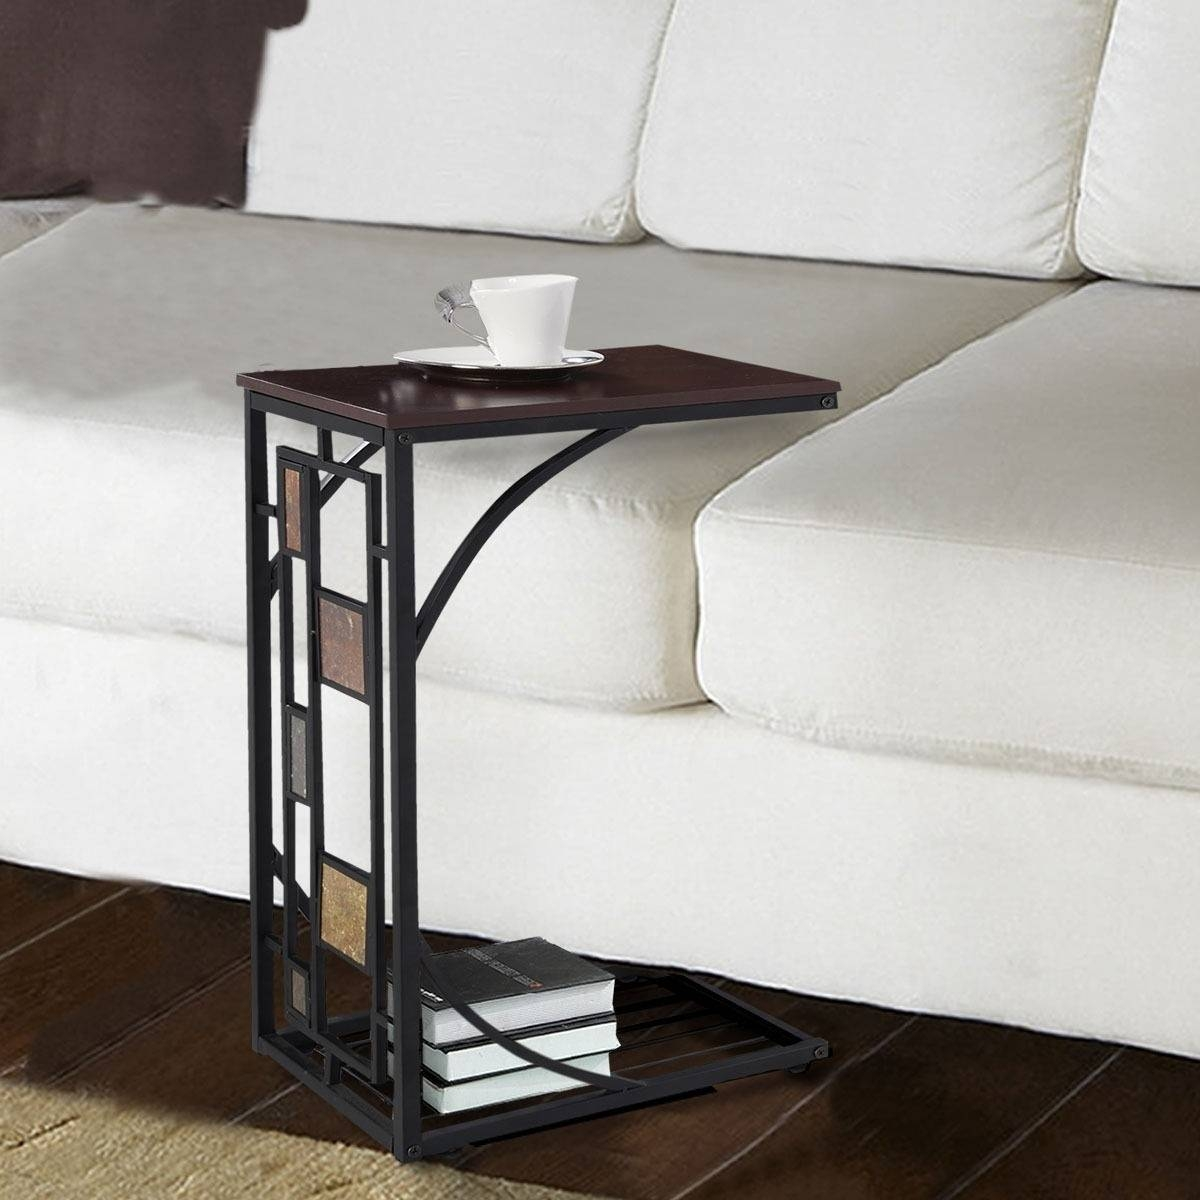 C Shaped Side Table | Portos For C Shaped Sofas (Photo 23 of 30)